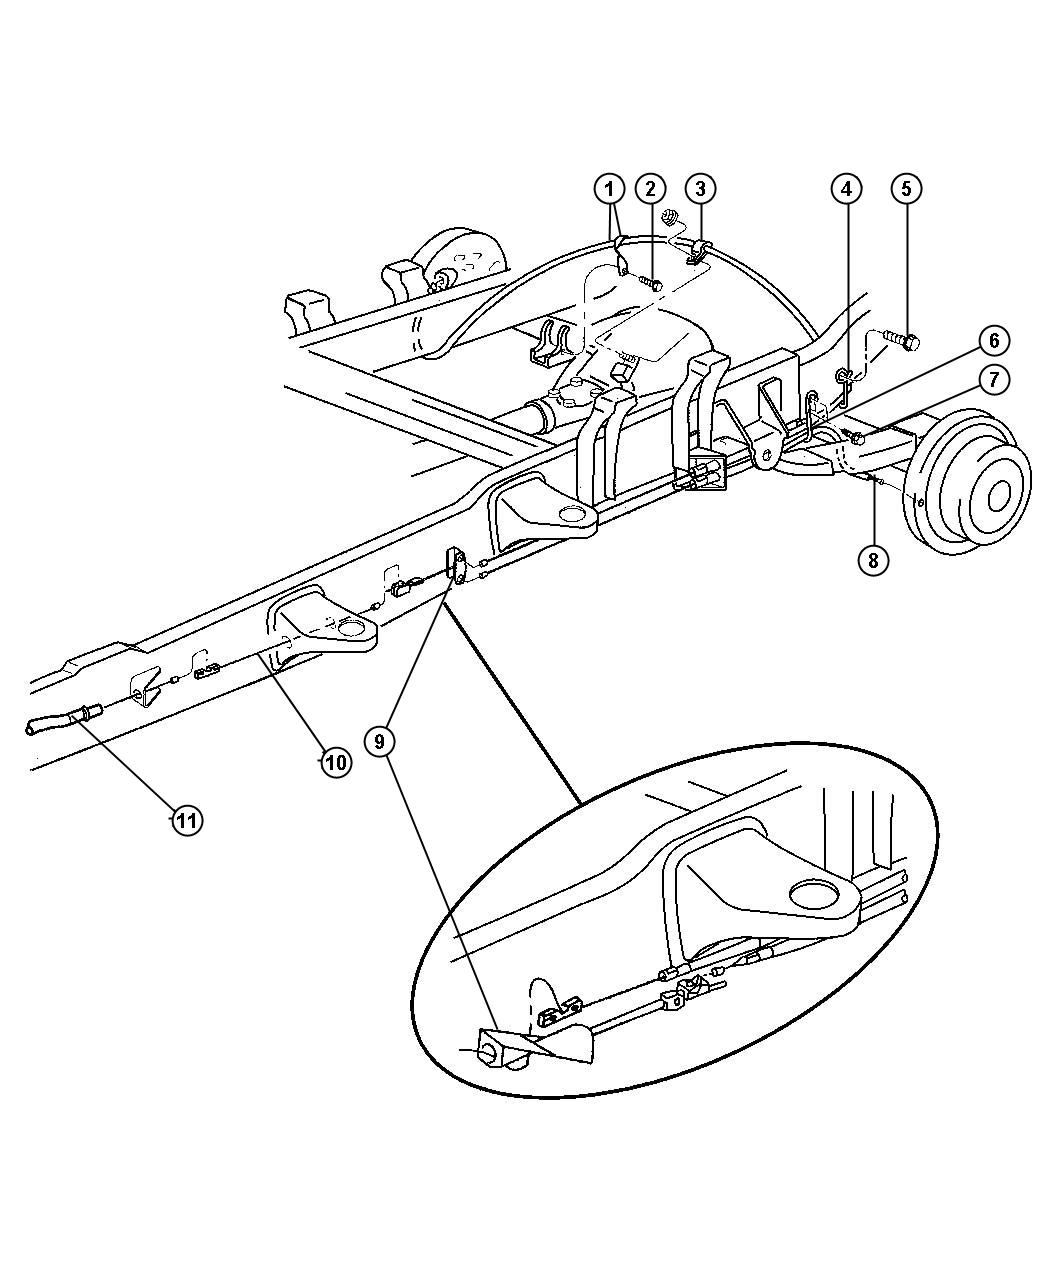 2001 dodge ram 1500 parking brake diagram sketch coloring page